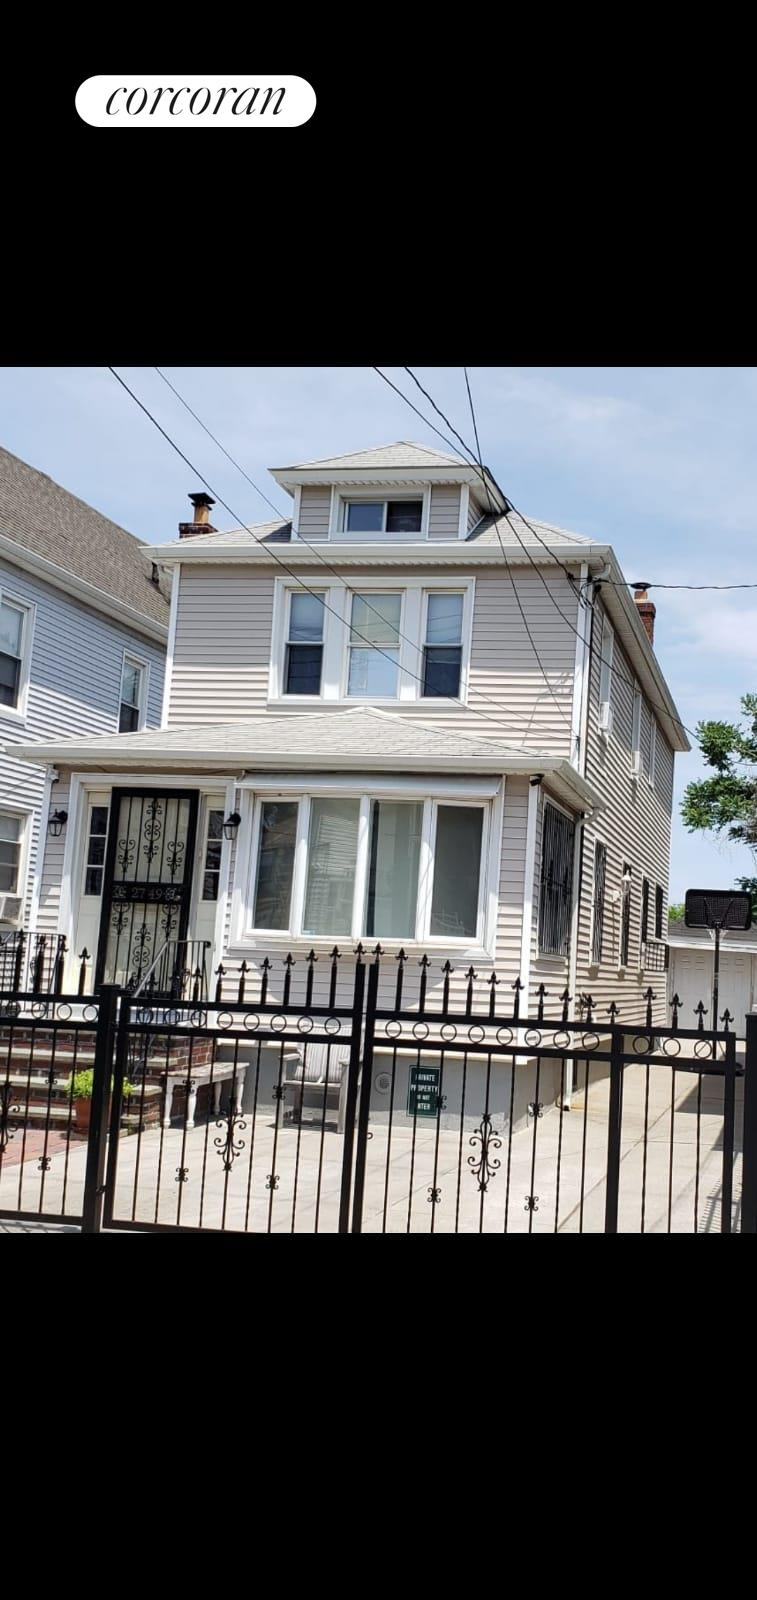 27-49 Curtis Street Queens (Other) Queens NY 11369